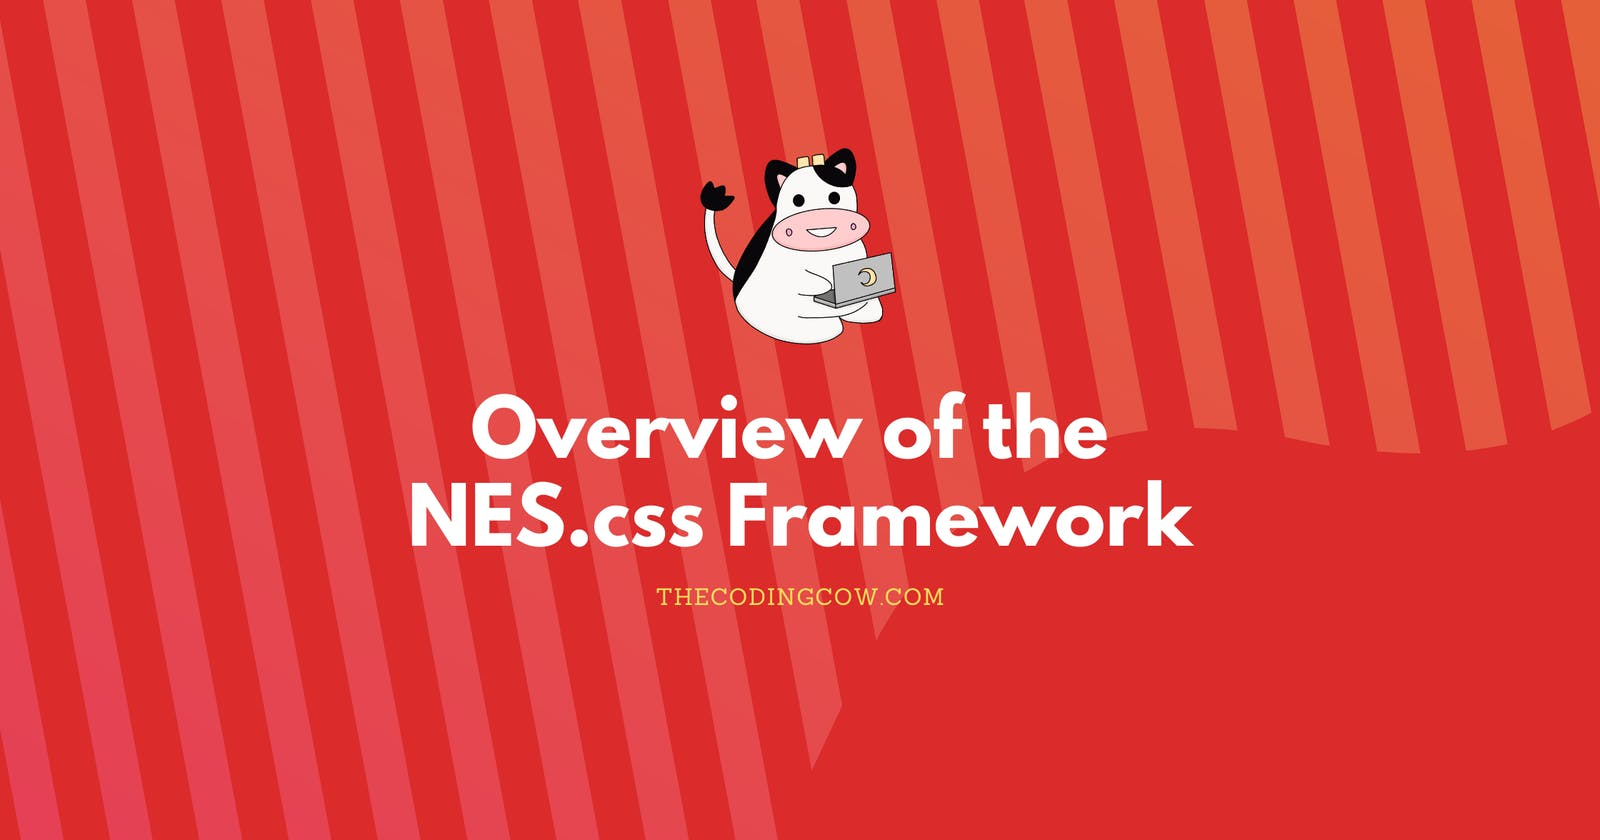 Overview of the NES.css Framework